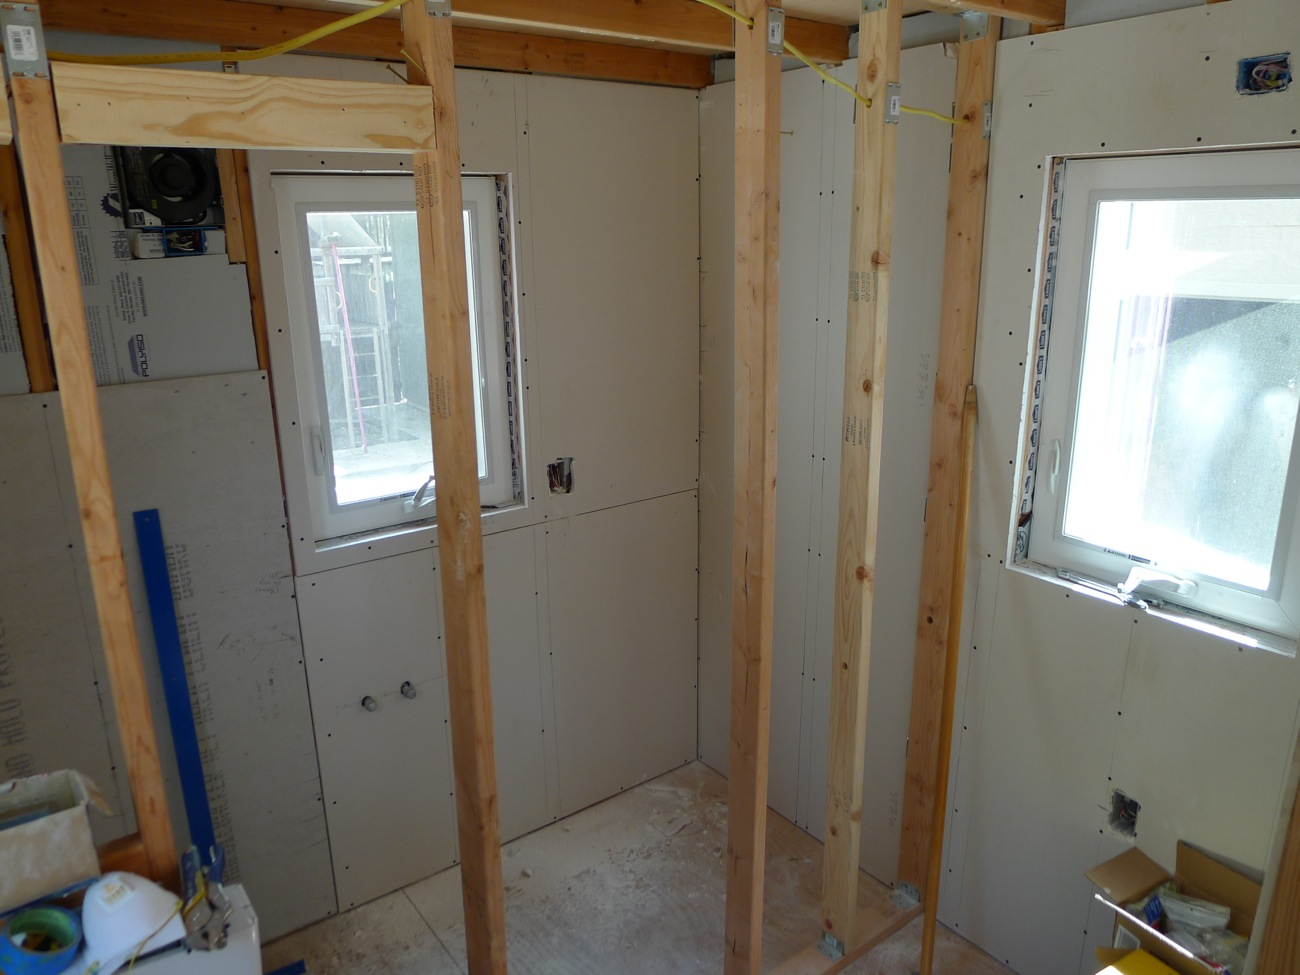 Bathroom drywall 28 images bathroom drywall 28 images for Drywall or cement board for shower